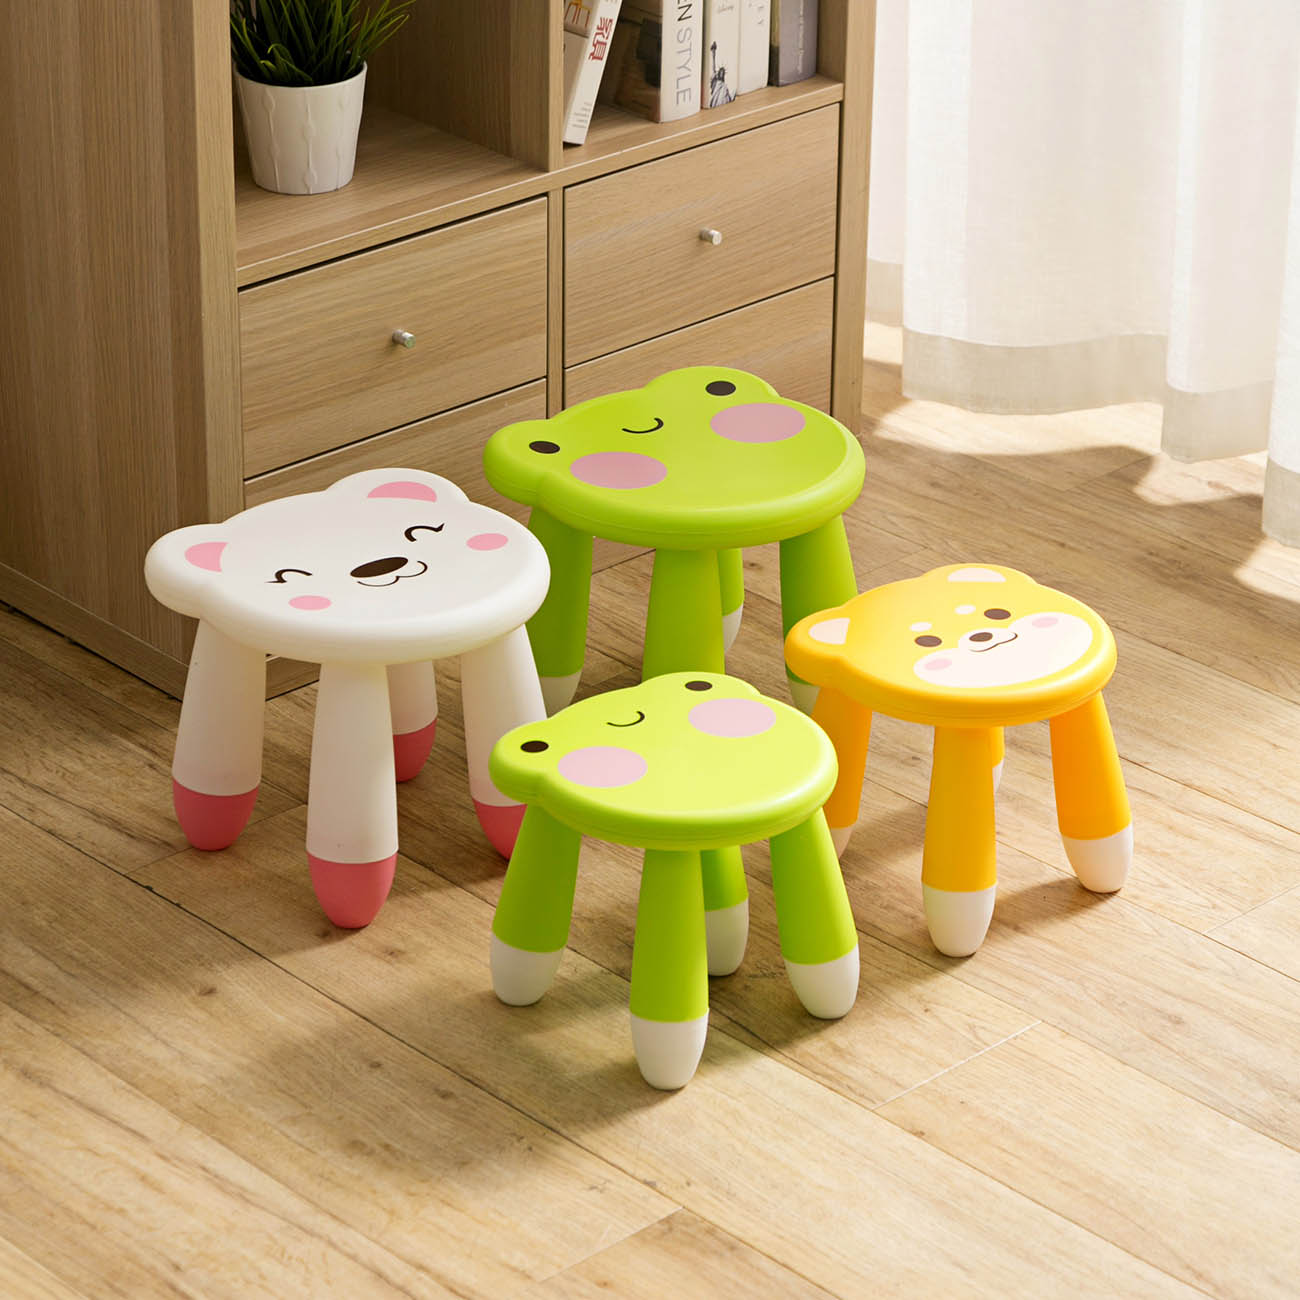 Kids Thicken Plastic Small Stool Living Room Adult Change Shoe Bench Bathroom Child Low Bench Baby Study Stool